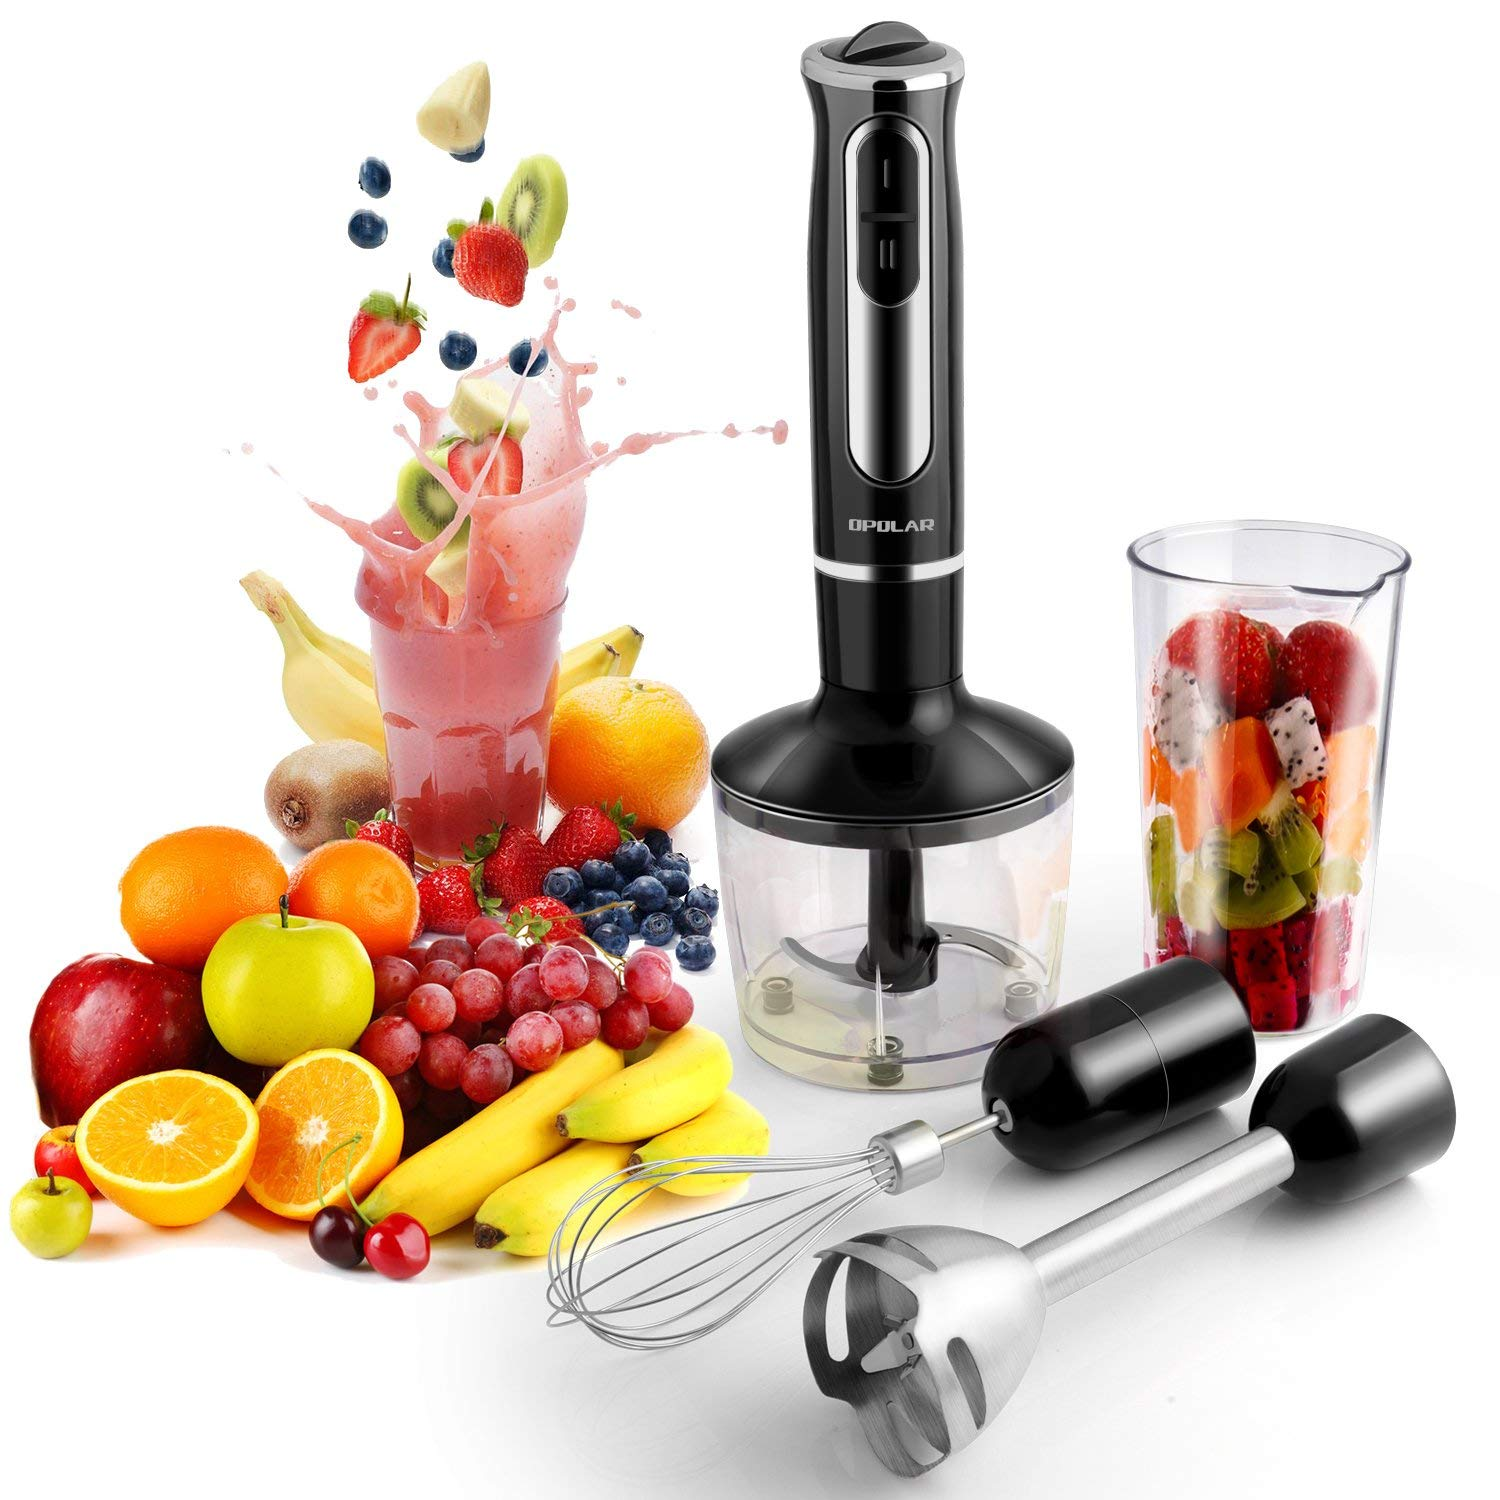 OPOLAR Stick Blender